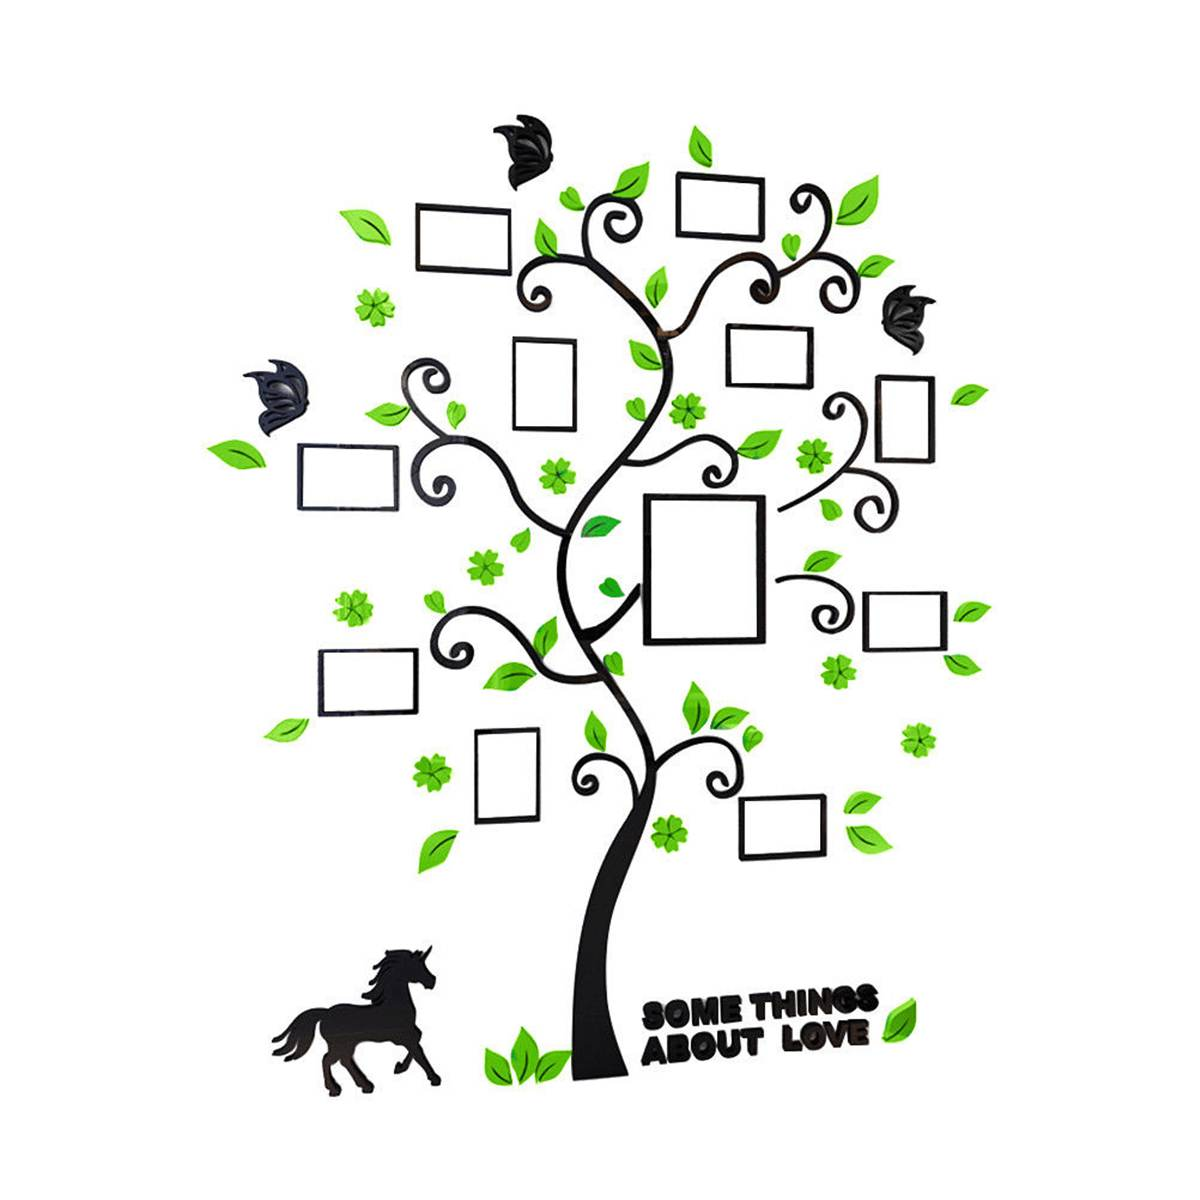 Acrylic 3D Family Photo Frame Tree Wall Stickers Removable DIY Art Wall Poster Decals Poster For Living Room Bedroom Home Decor